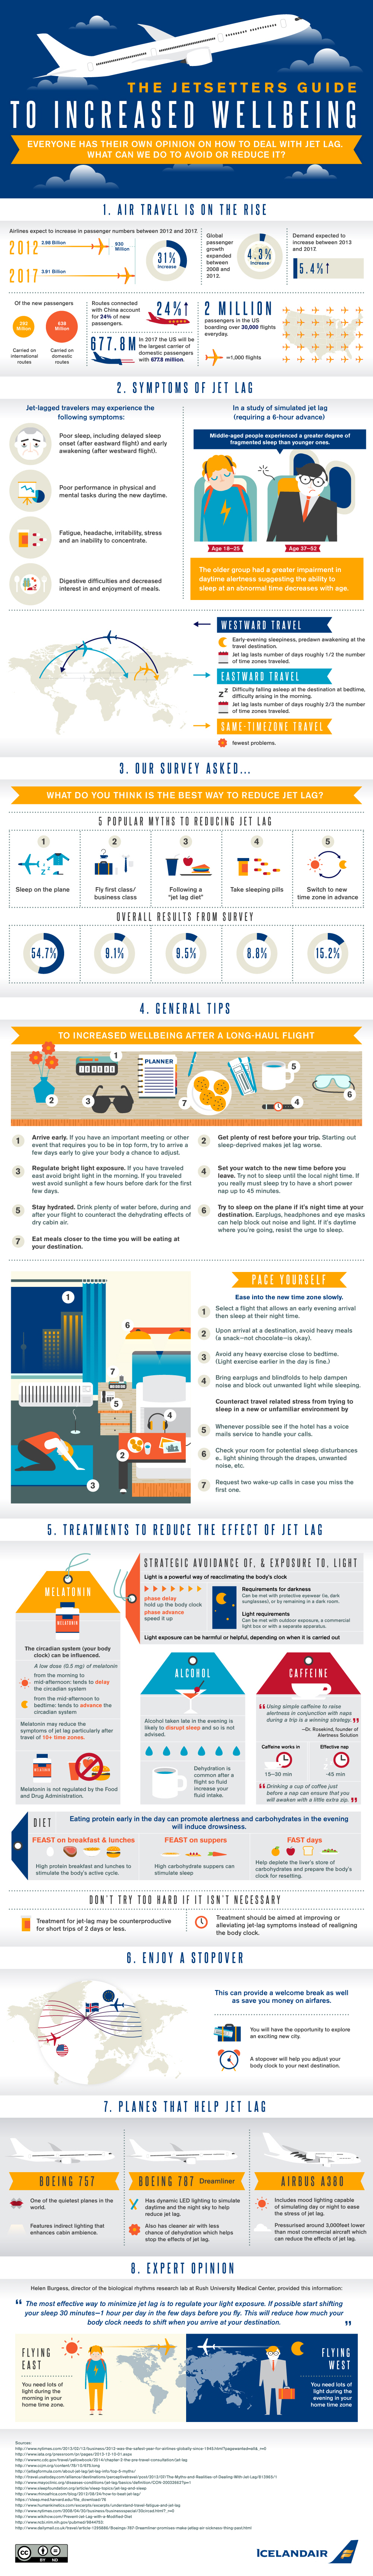 Icelandair In-Flight Wi-Fi Infographic